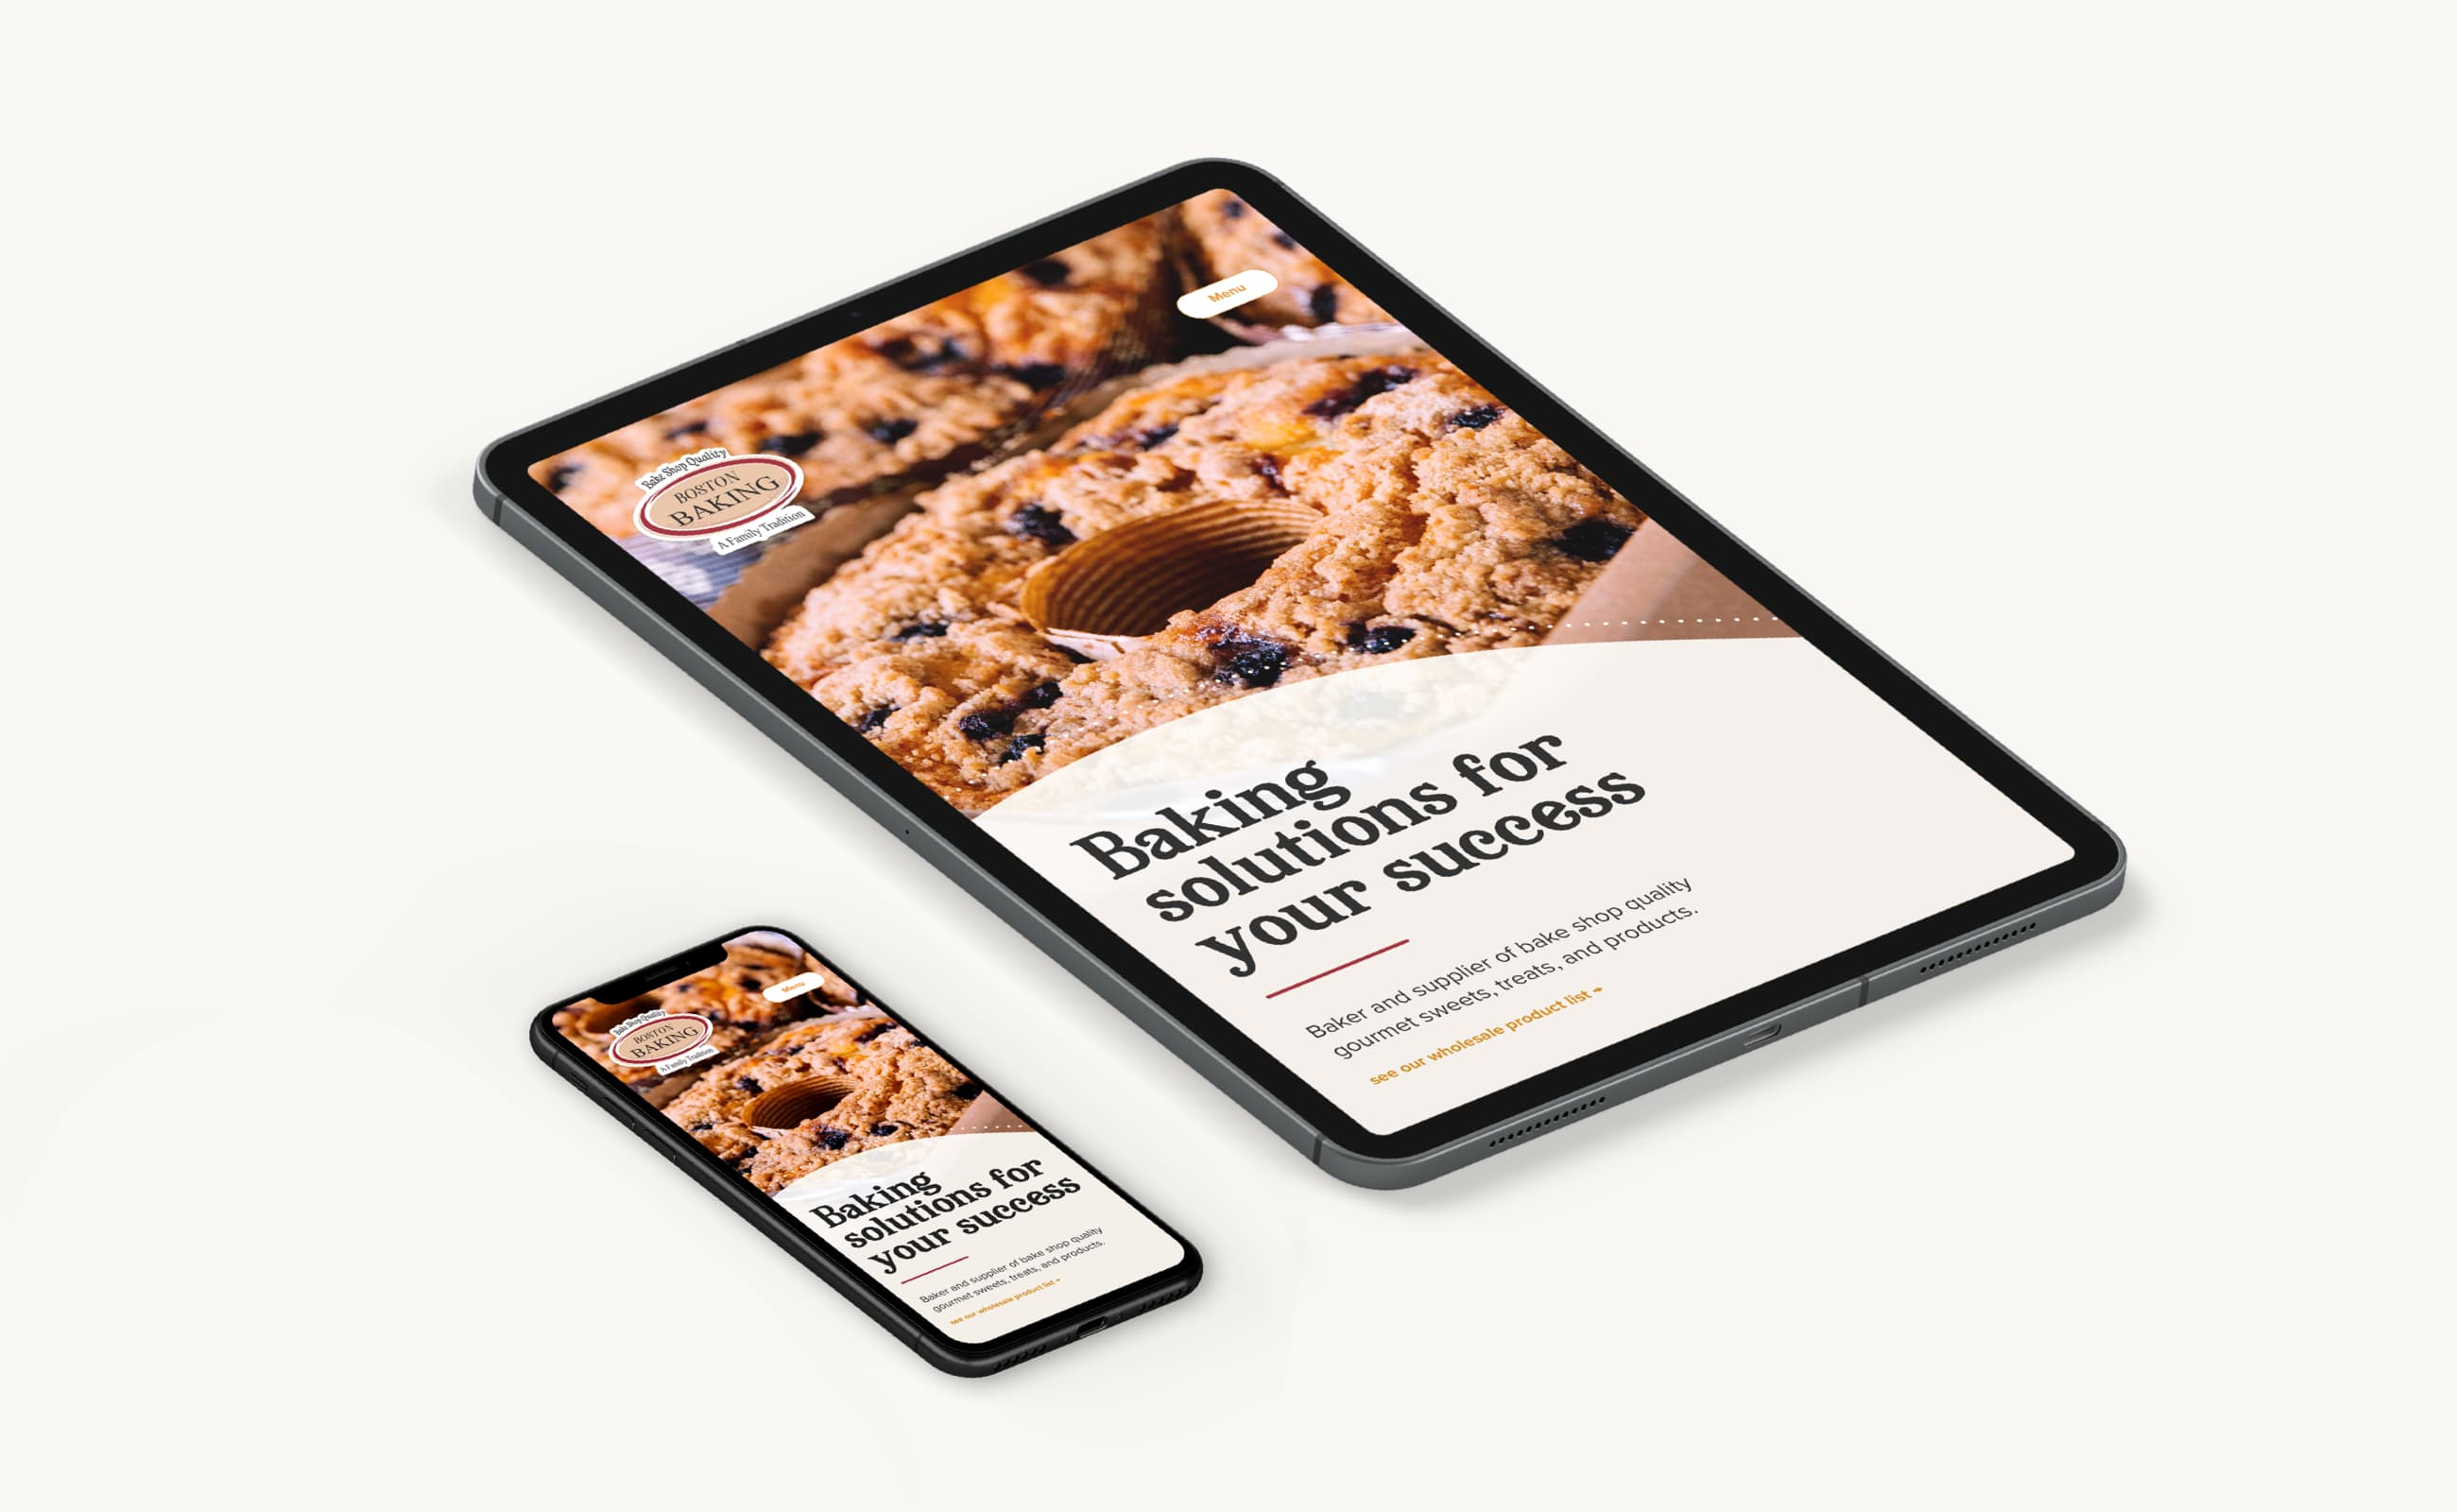 King Design Boston Baking Responsive Device Mockups